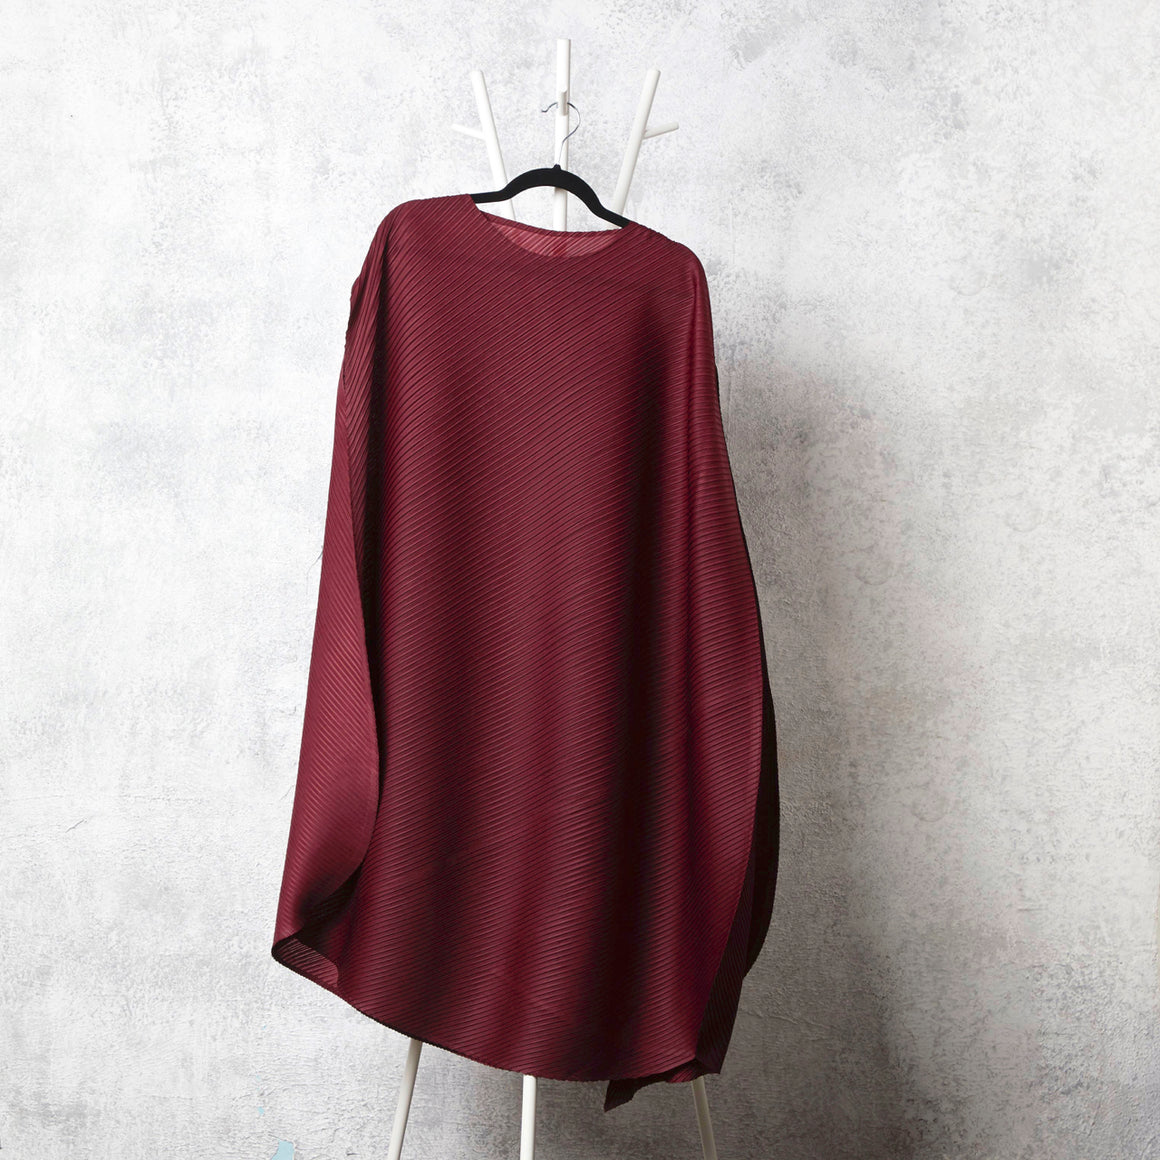 Cape Style, Bias Drape Dress - Maroon